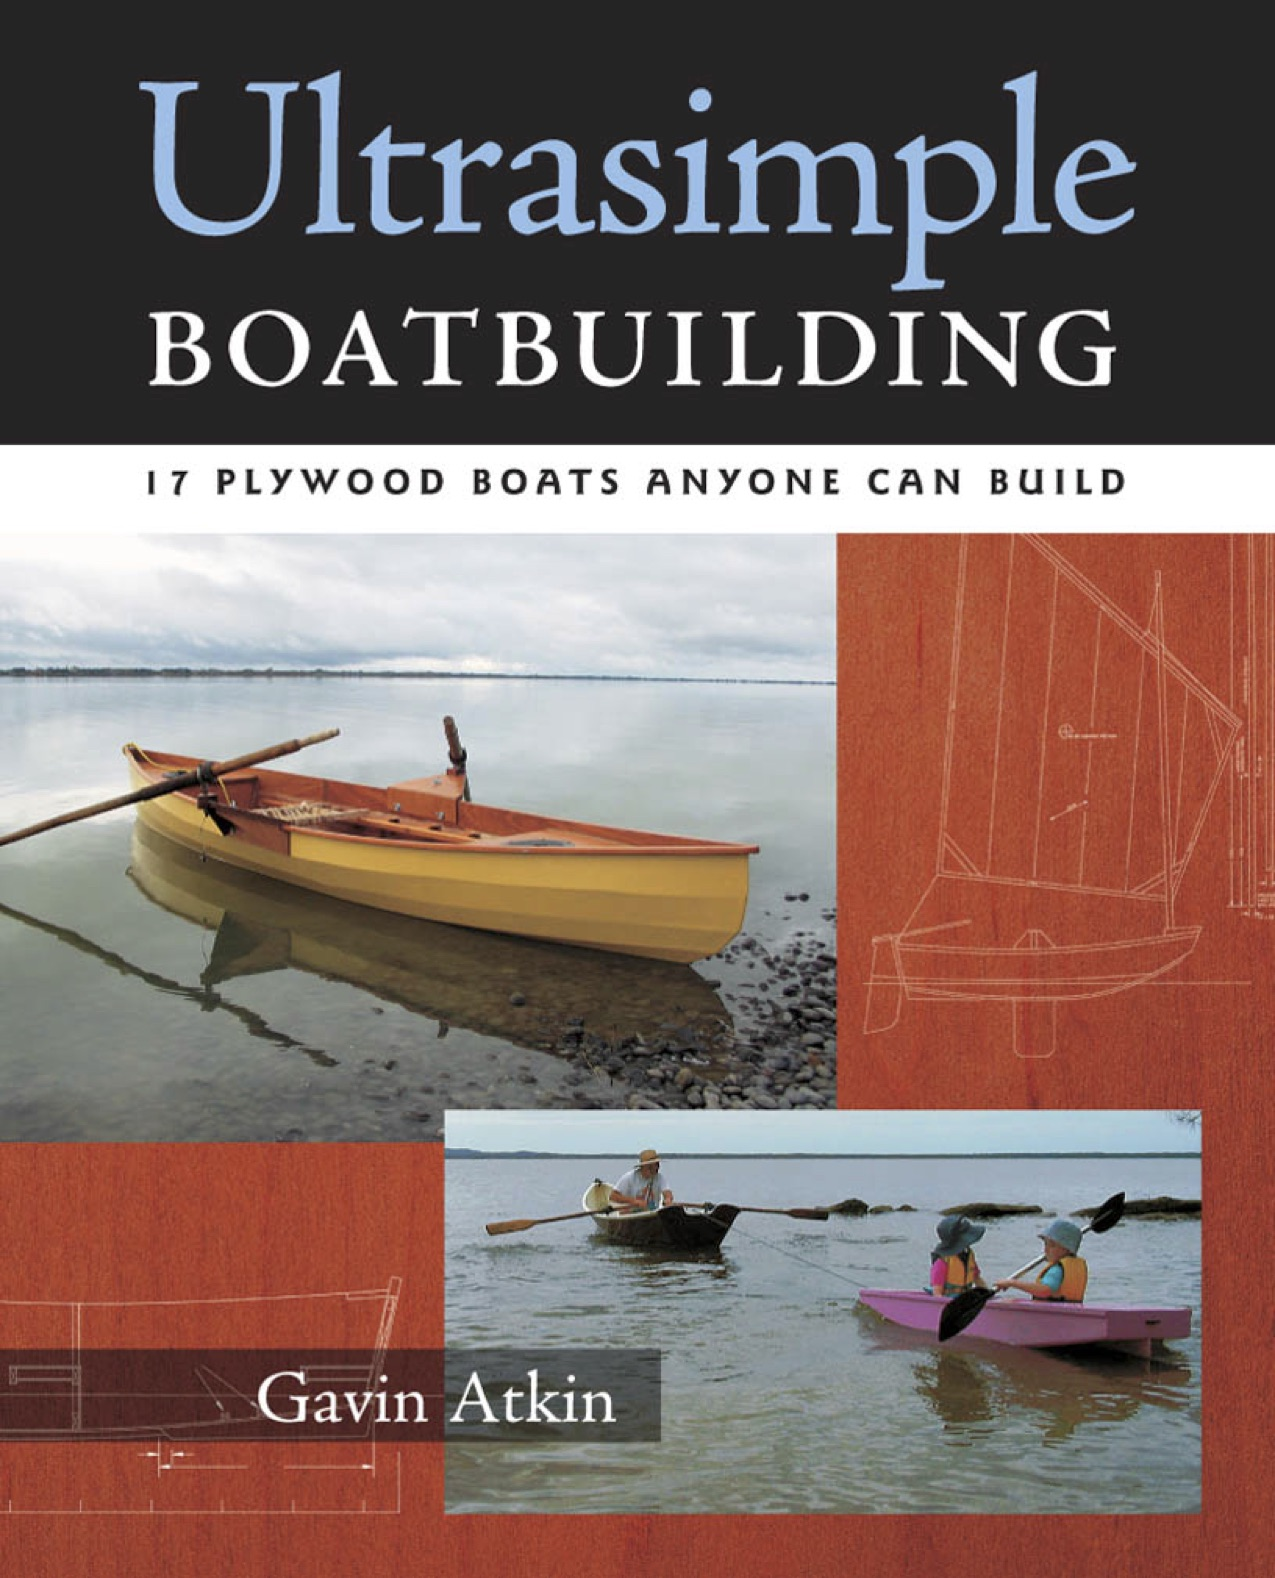 Ultrasimple,dinghy,Building,Can,Boats Ultrasimple Boat Building 17 Plywood Boats Anyone Can Build  114959isc8kxqsvshixv8s